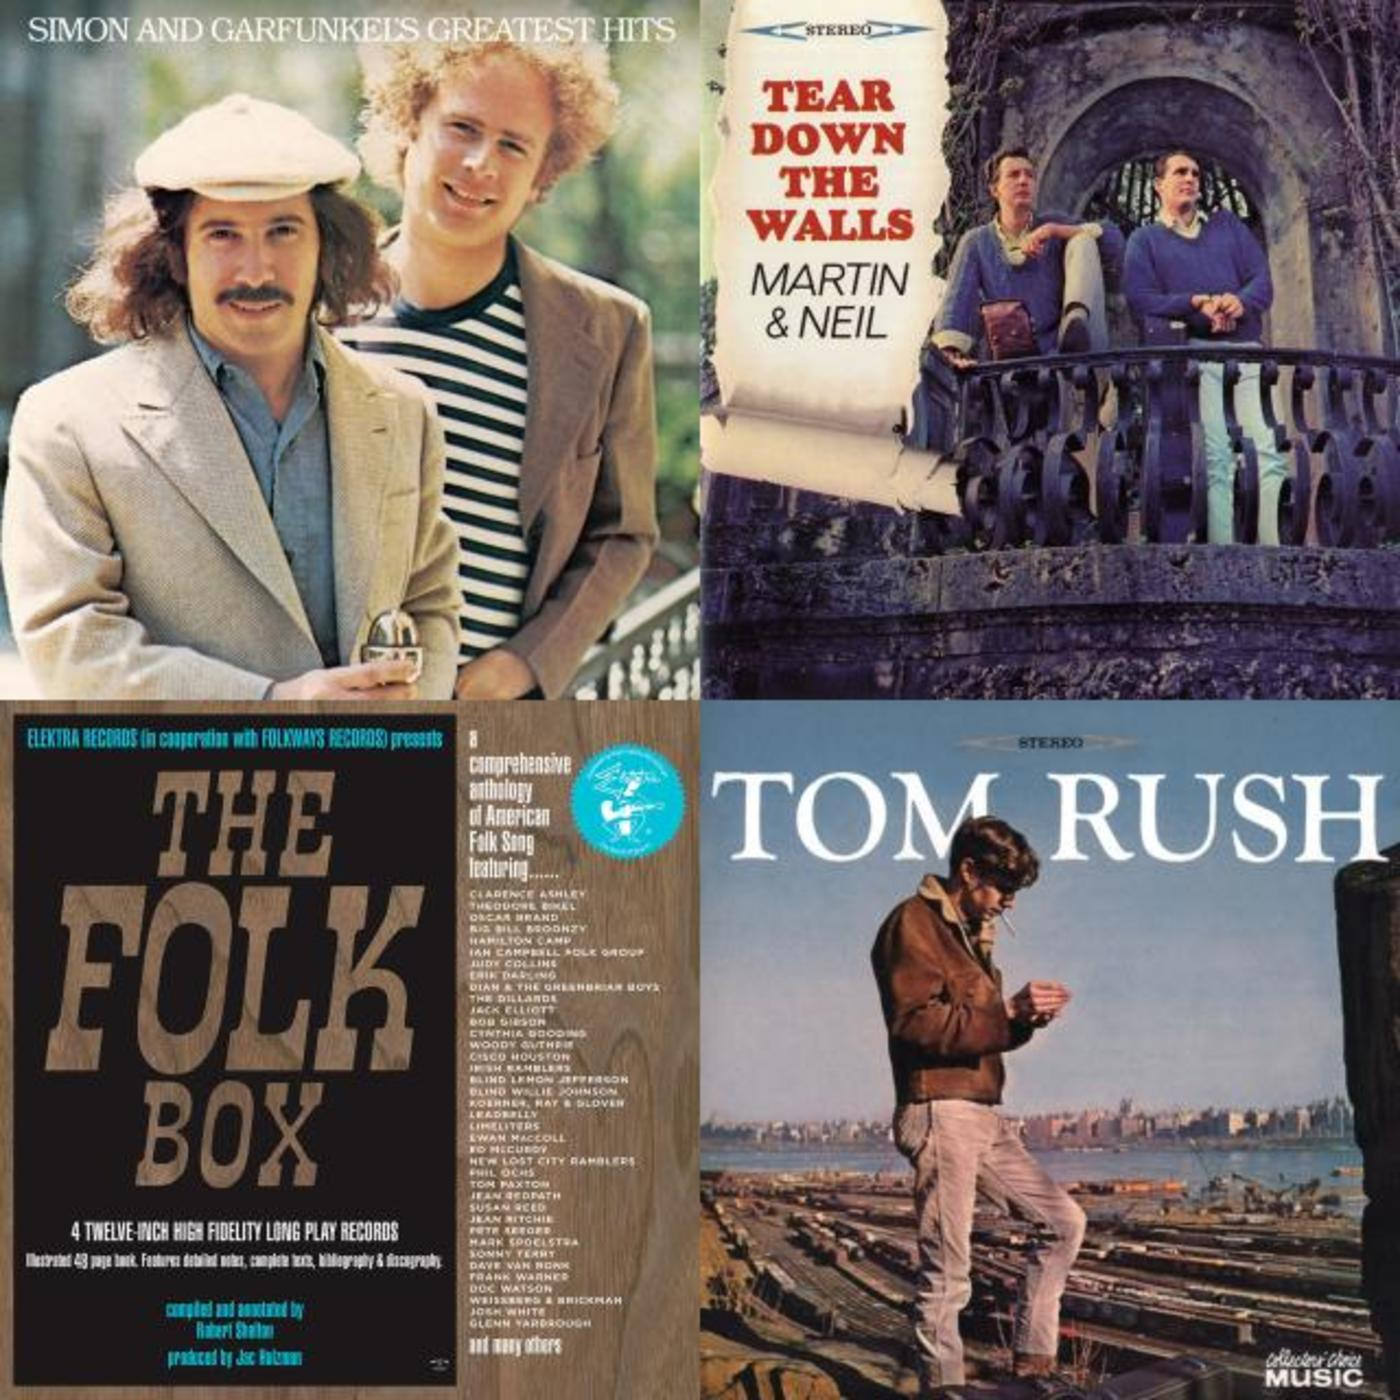 Echoes of The Folk Box: 50 Years, 50 Recordings, 50 Acts - Jac Holzman, Ted Olson, Vince Martin & Fred Neil, Tom Rush, Simon & Garfunkel, Grateful Dead, The Byrds, Fotheringay